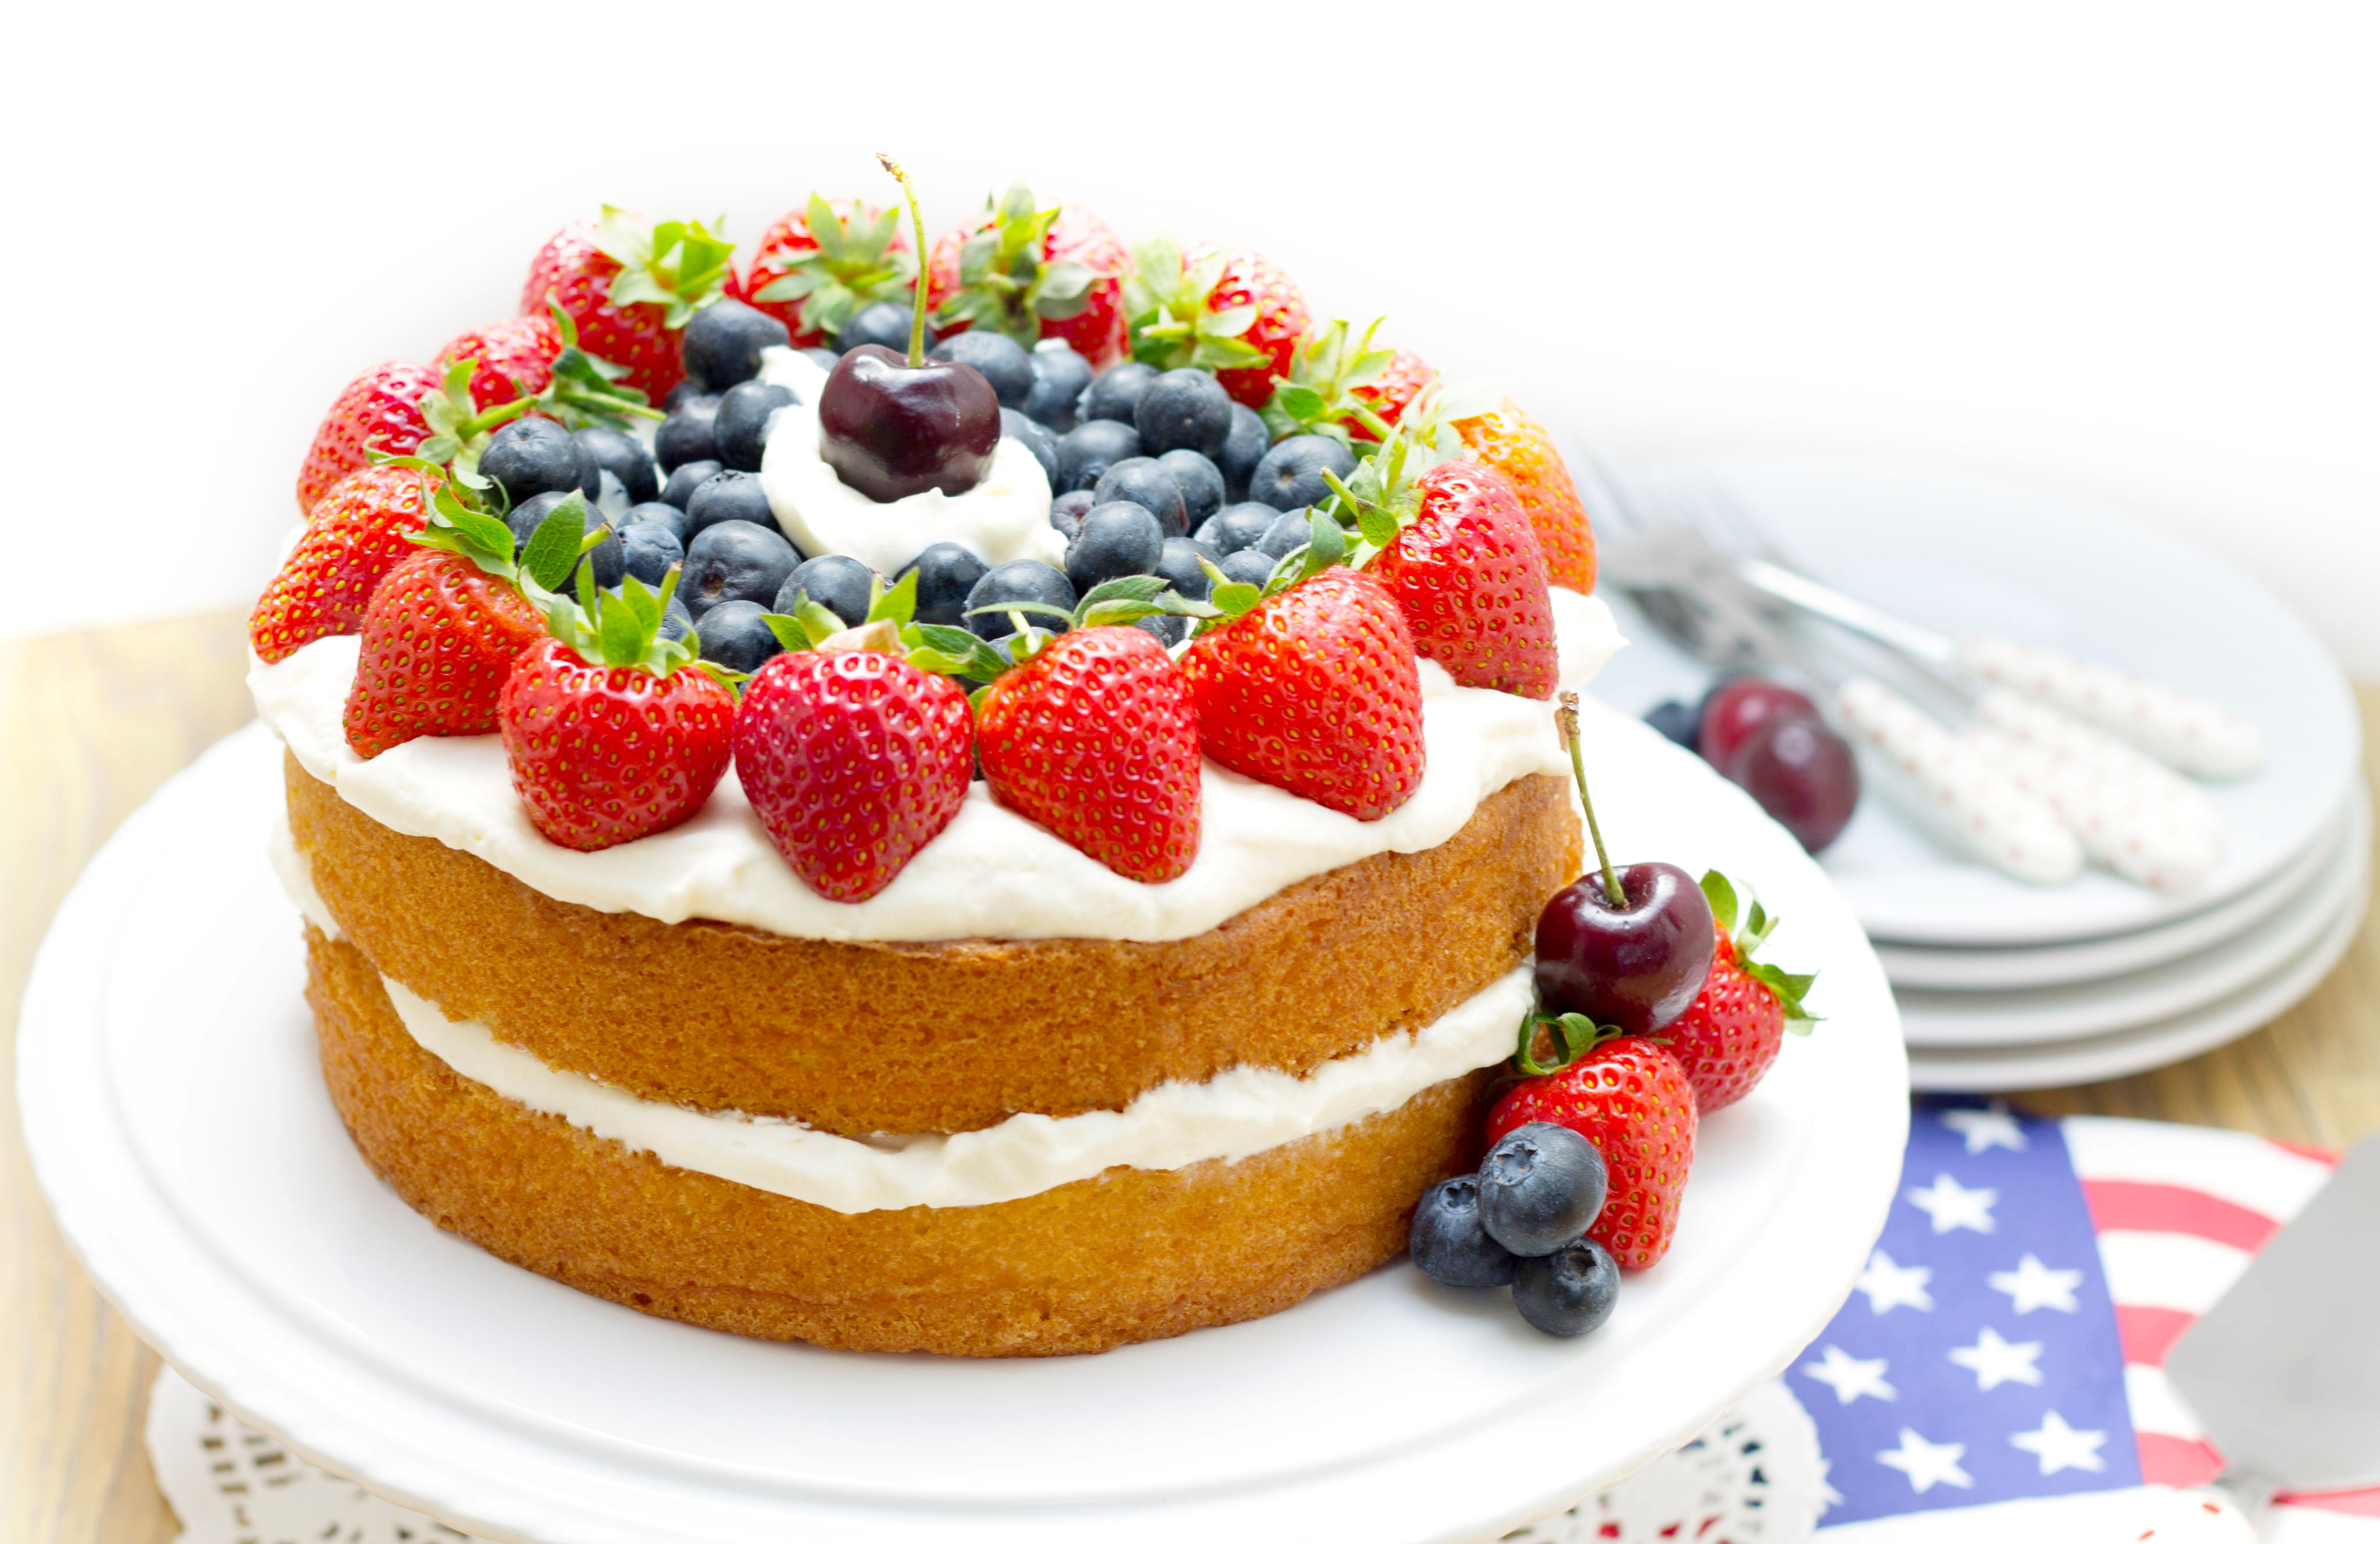 Best Sponge Cake For Decorating